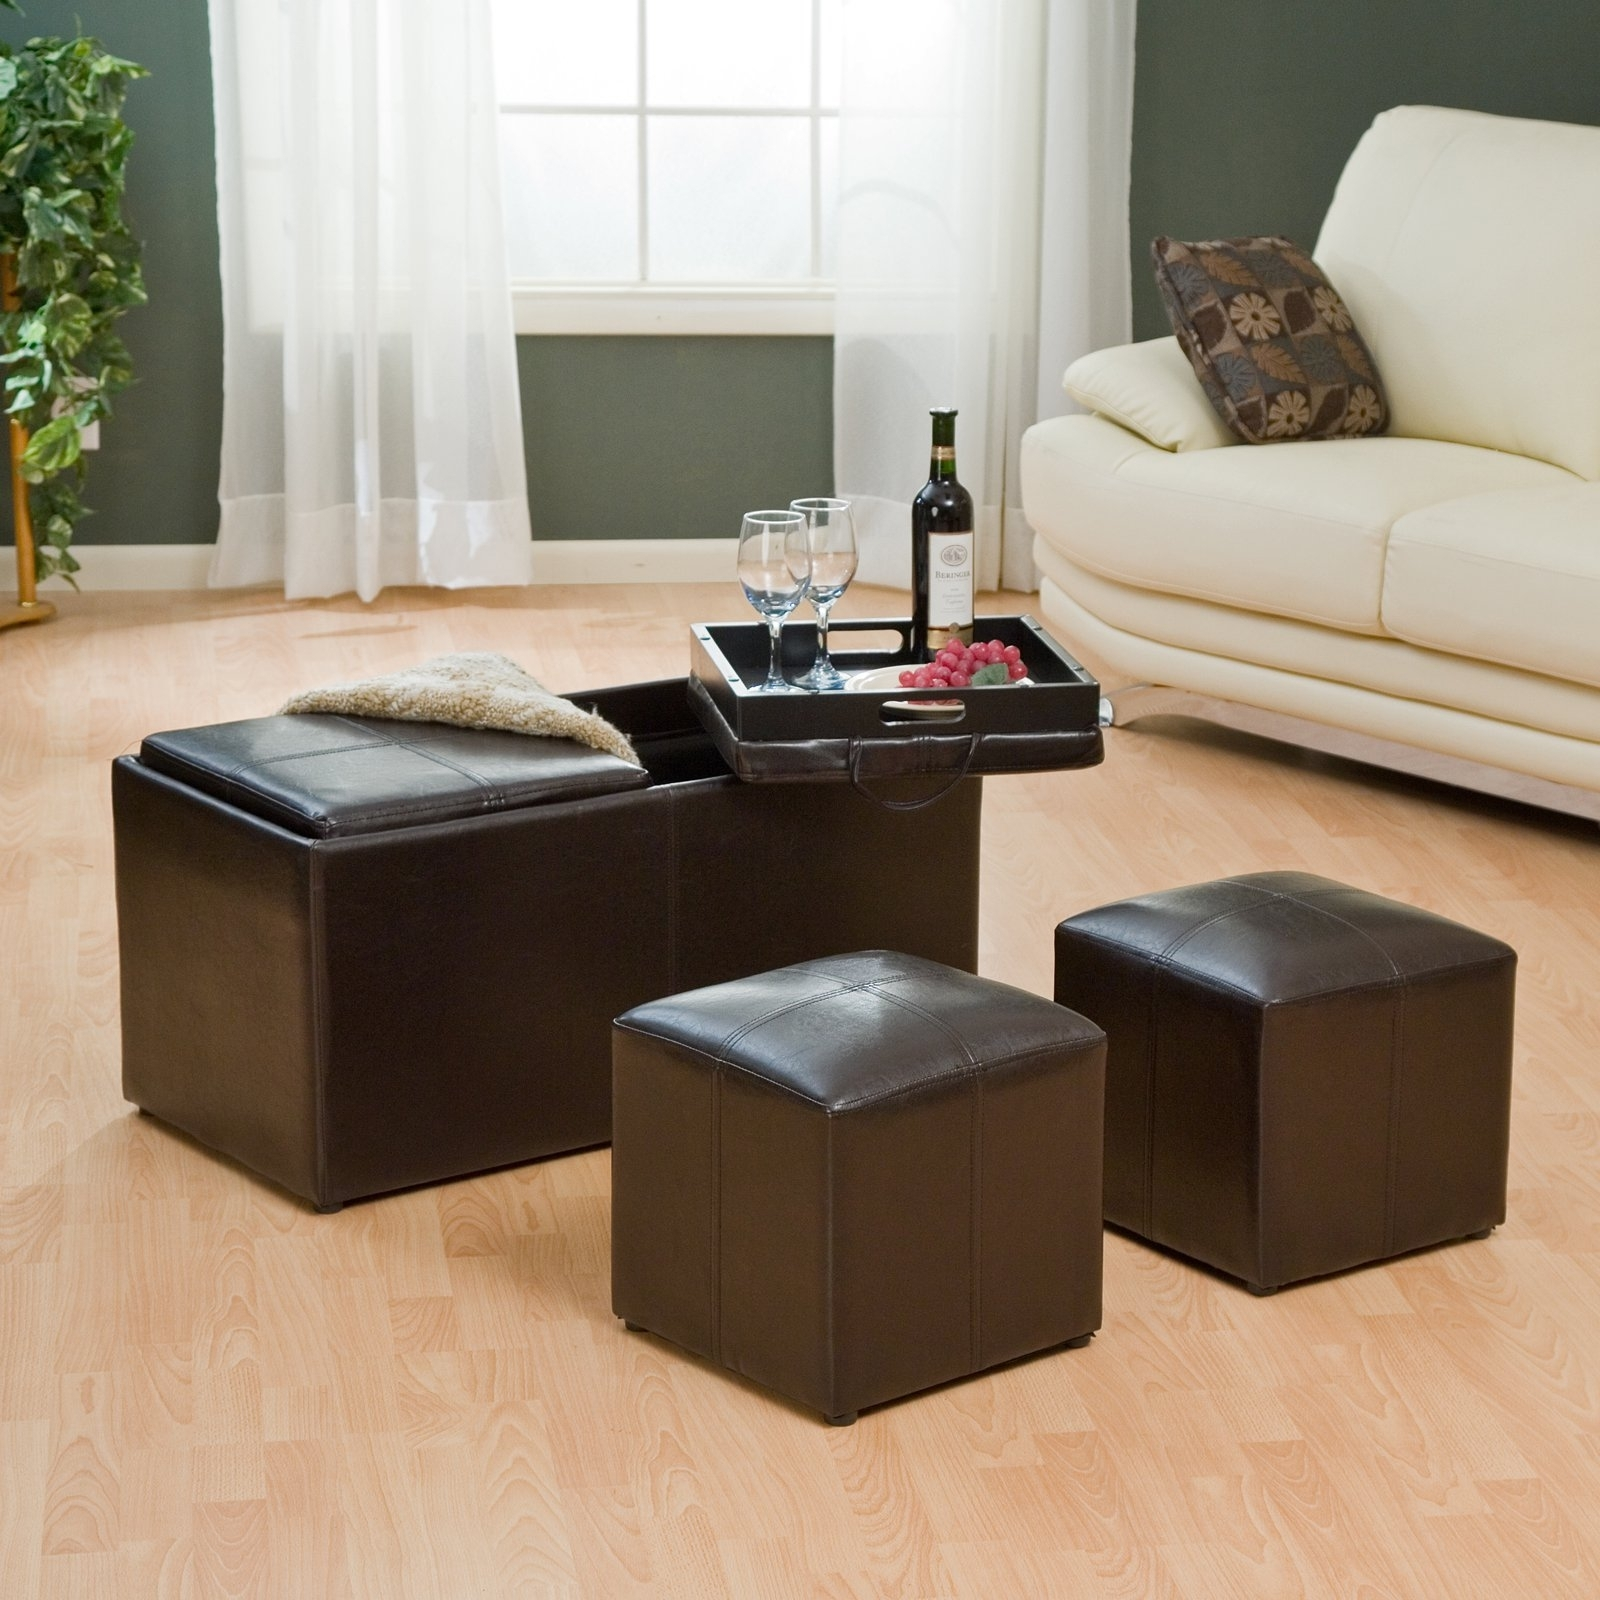 Coffee Table With Ottomans Tray — All Furniture : Get The Most Out Intended For Ottomans With Tray (View 2 of 15)